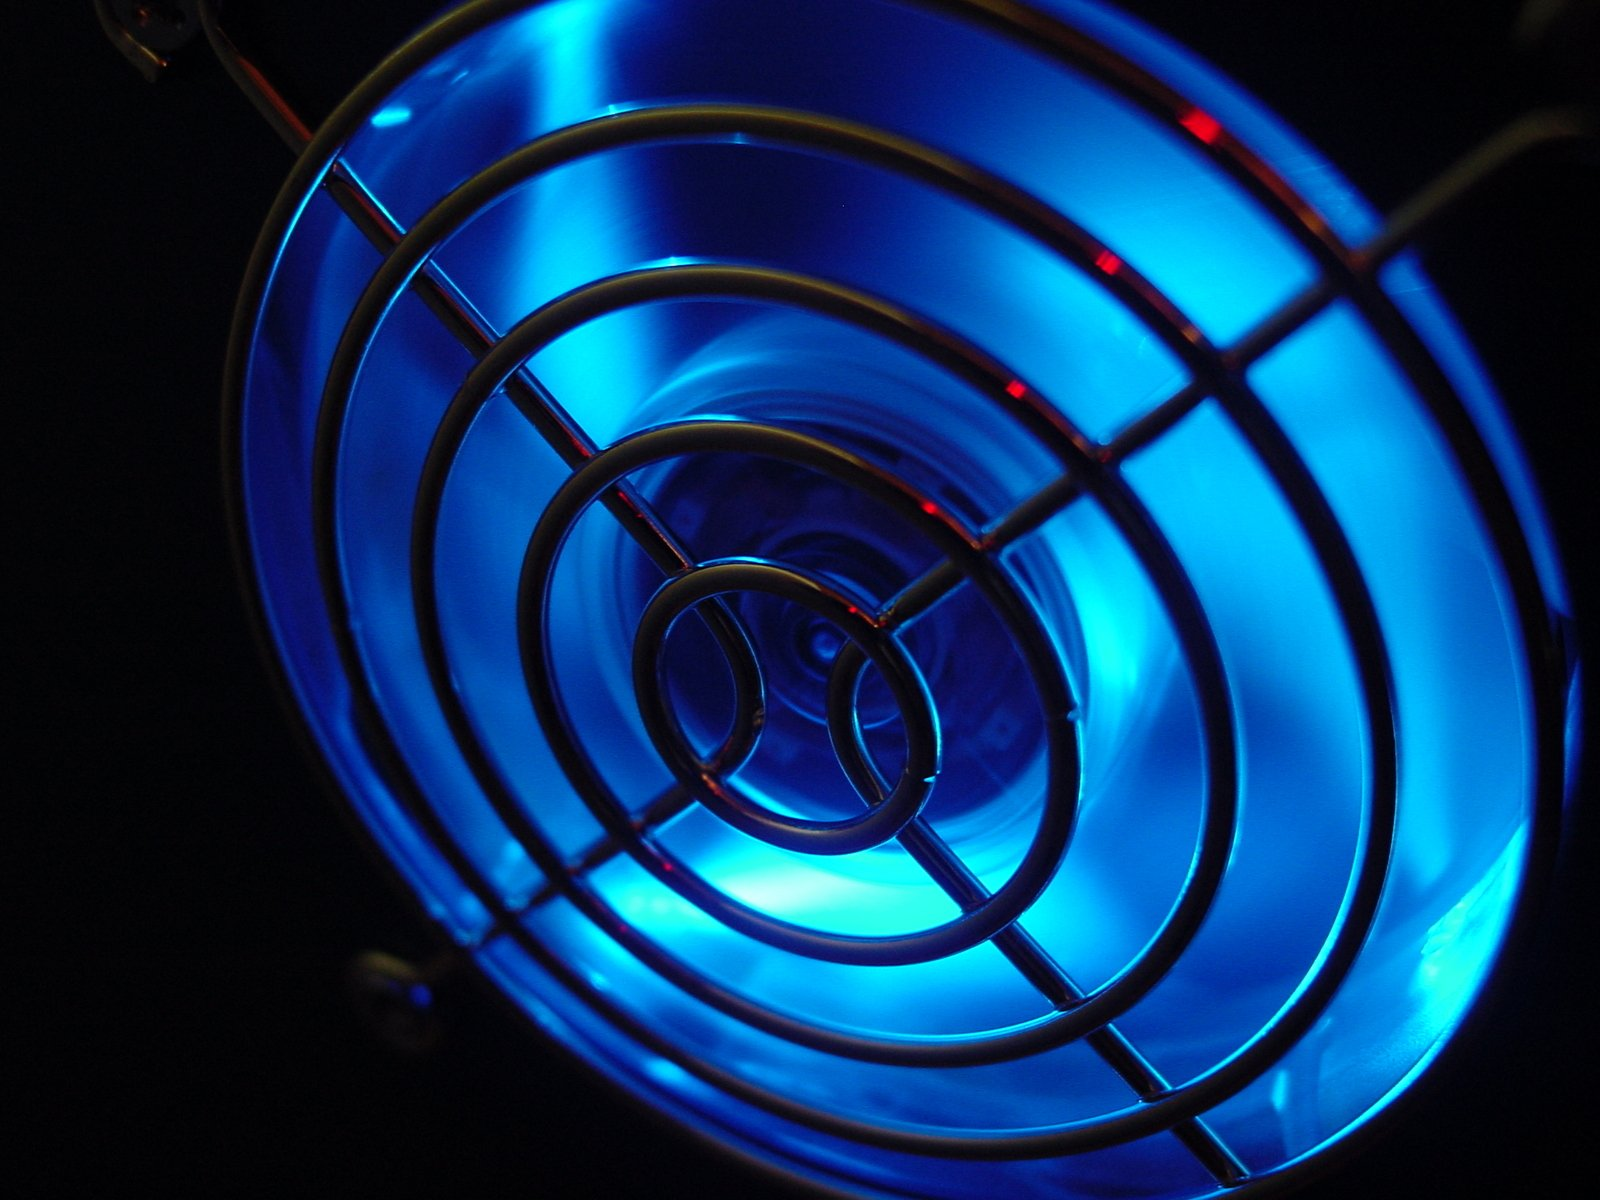 Blue fan glow in dark